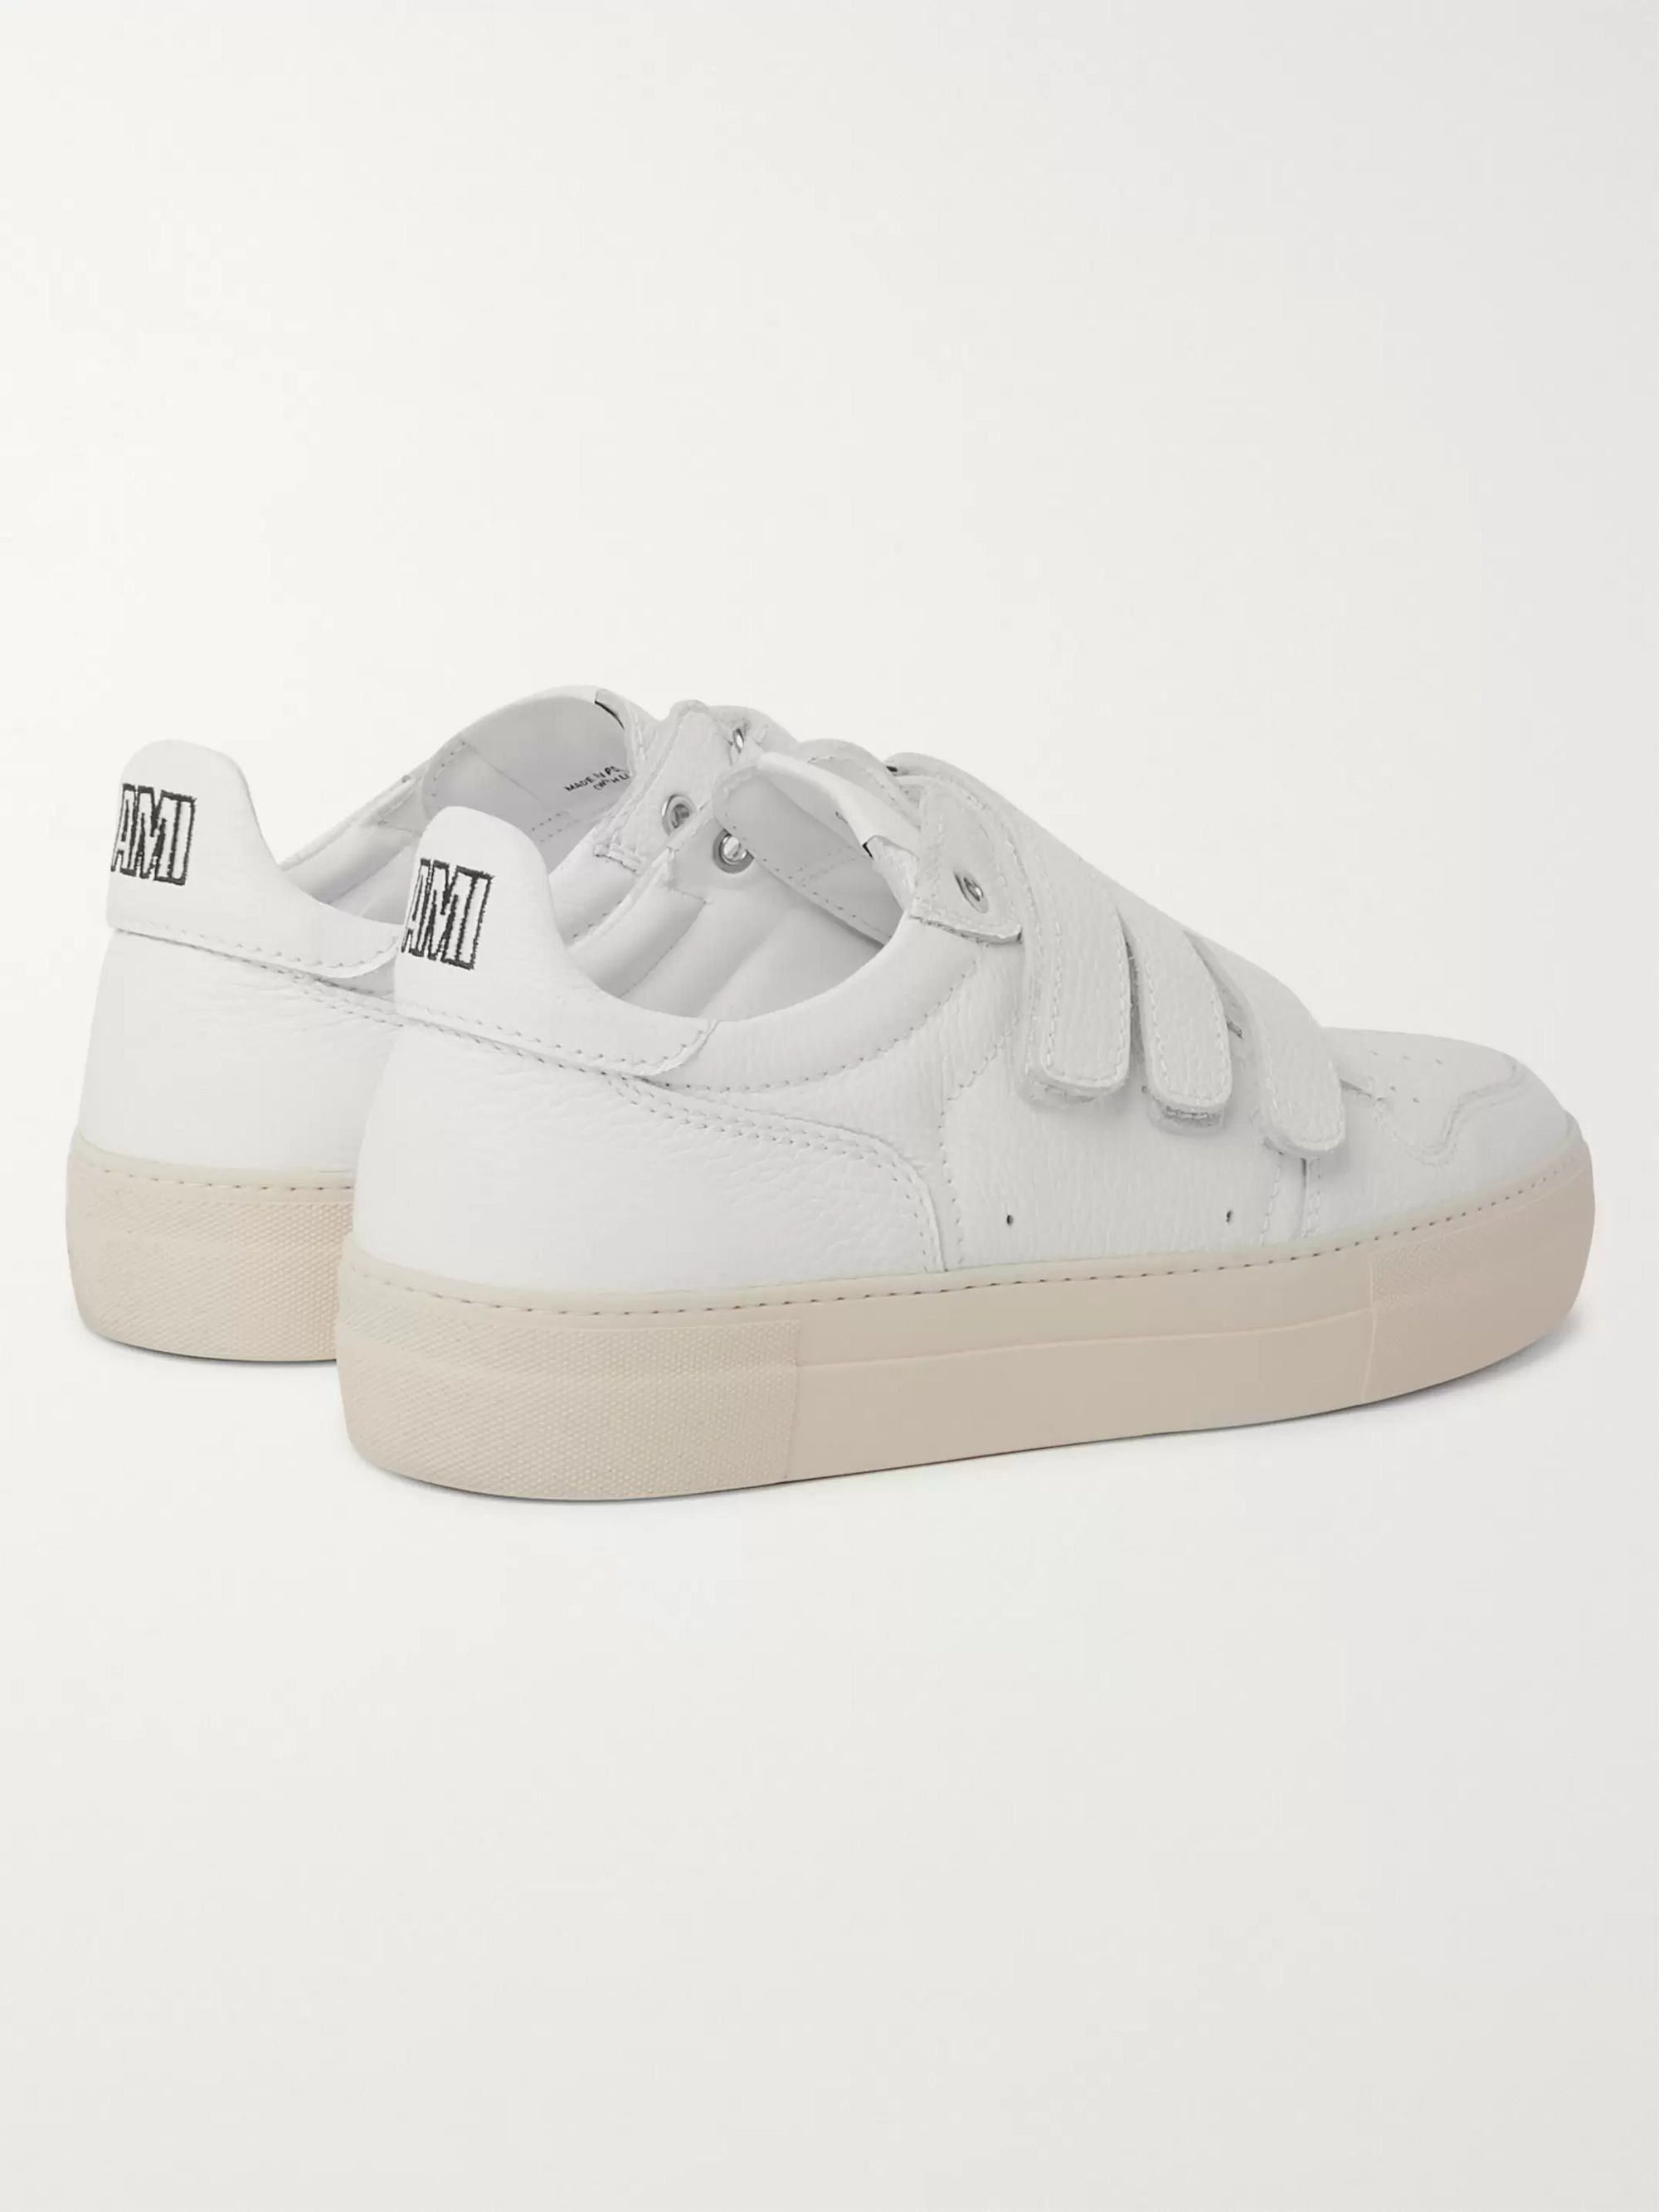 AMI Full-Grain Leather Sneakers